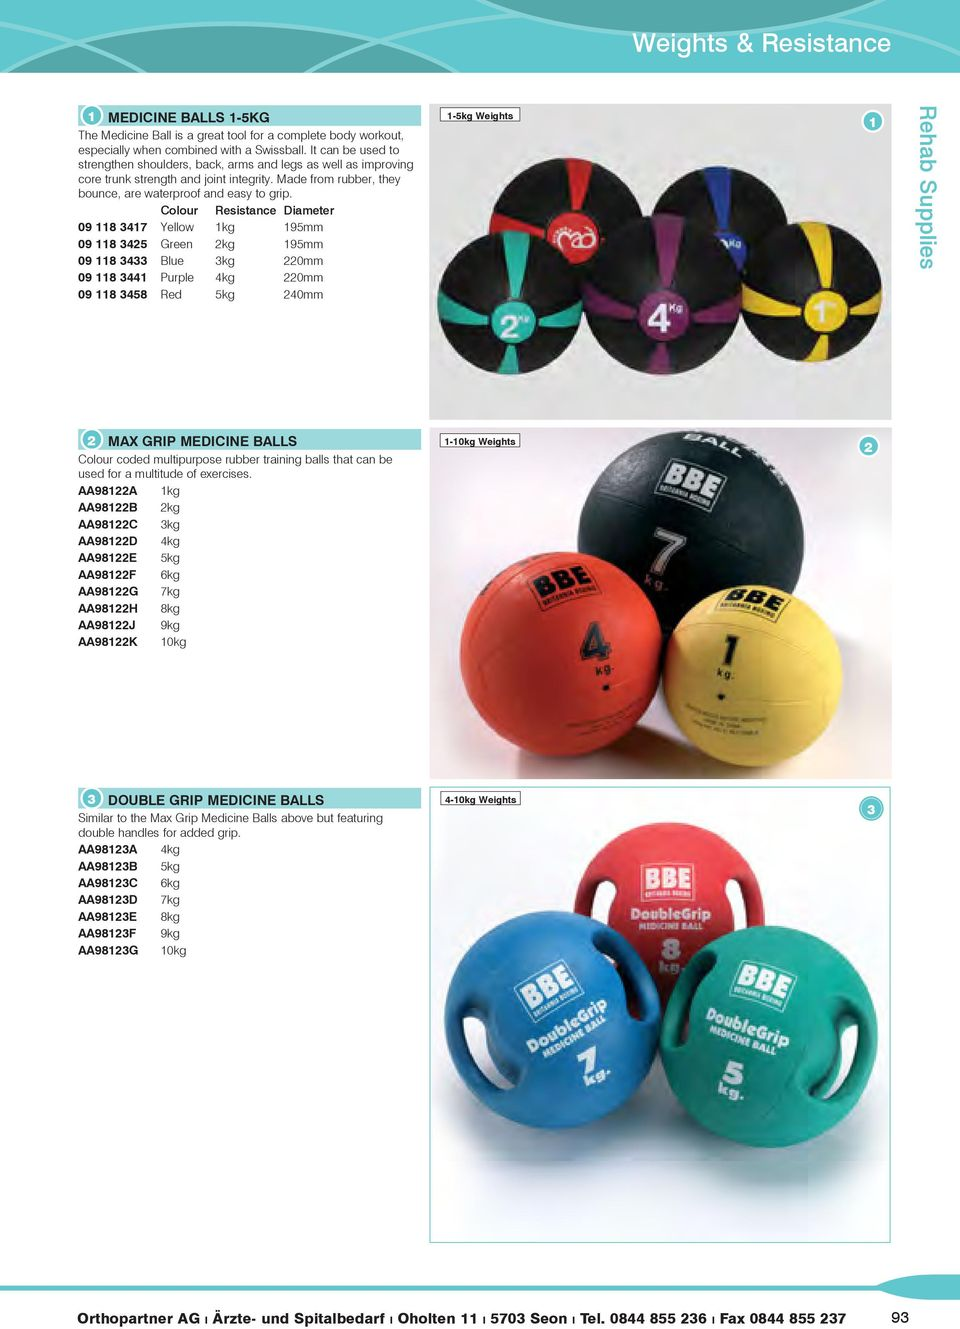 Colour Resistance Diameter 09 8 7 Yellow kg 95mm 09 8 5 Green kg 95mm 09 8 Blue kg 0mm 09 8 Purple kg 0mm 09 8 58 Red 5kg 0mm -5kg Weights MAX GRIP MEDICINE BALLS Colour coded multipurpose rubber